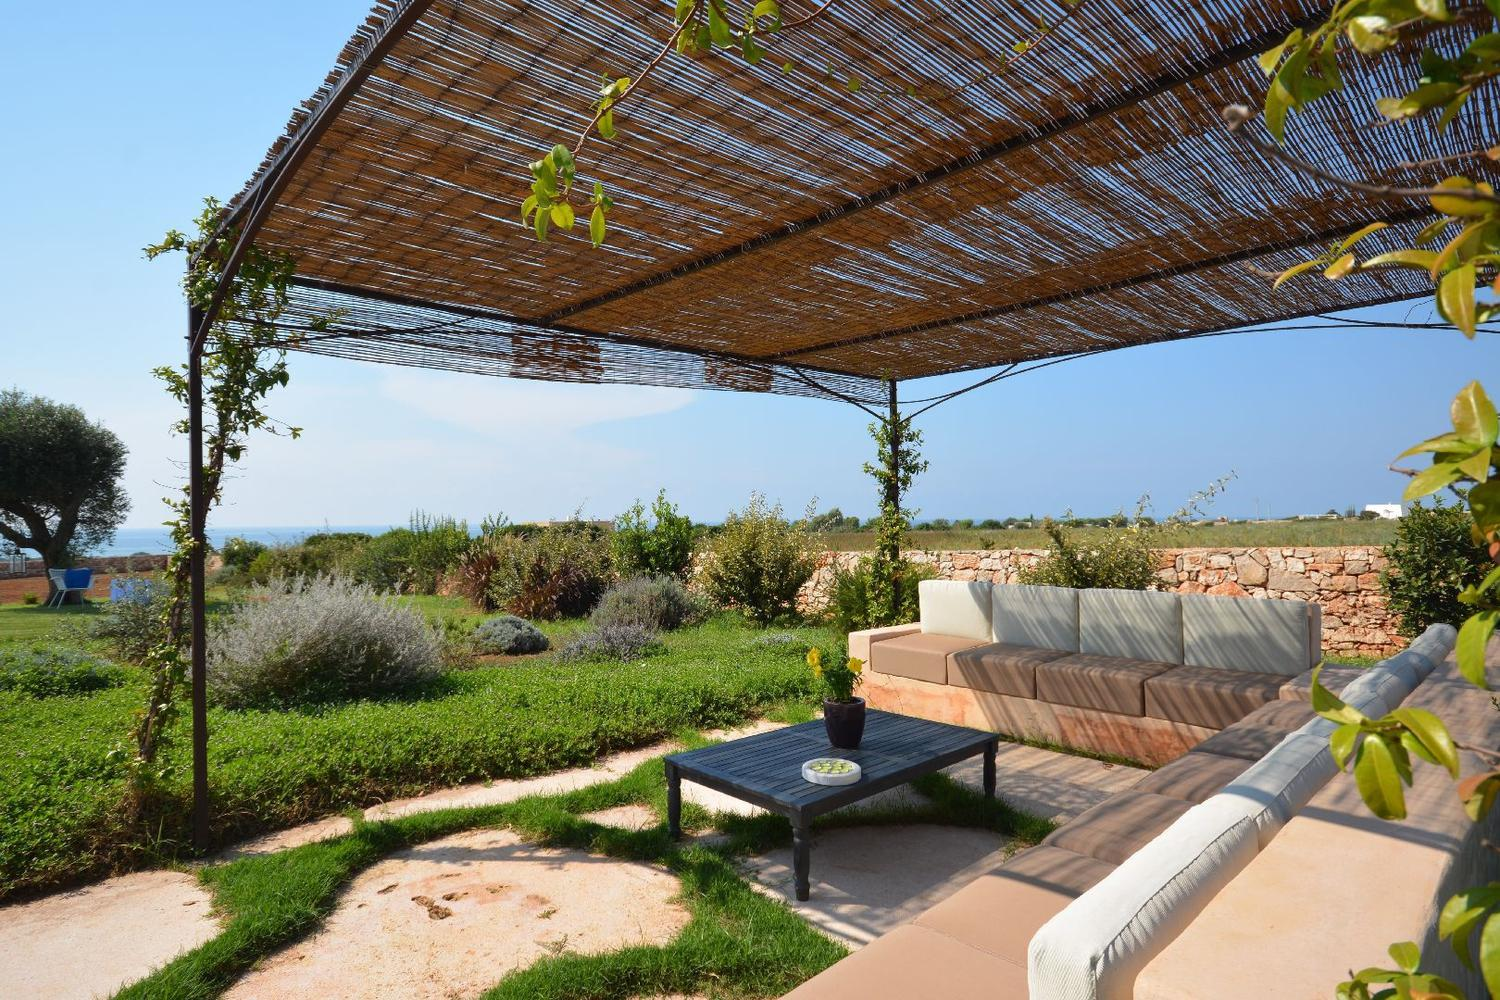 Pergola with sofas and sea view